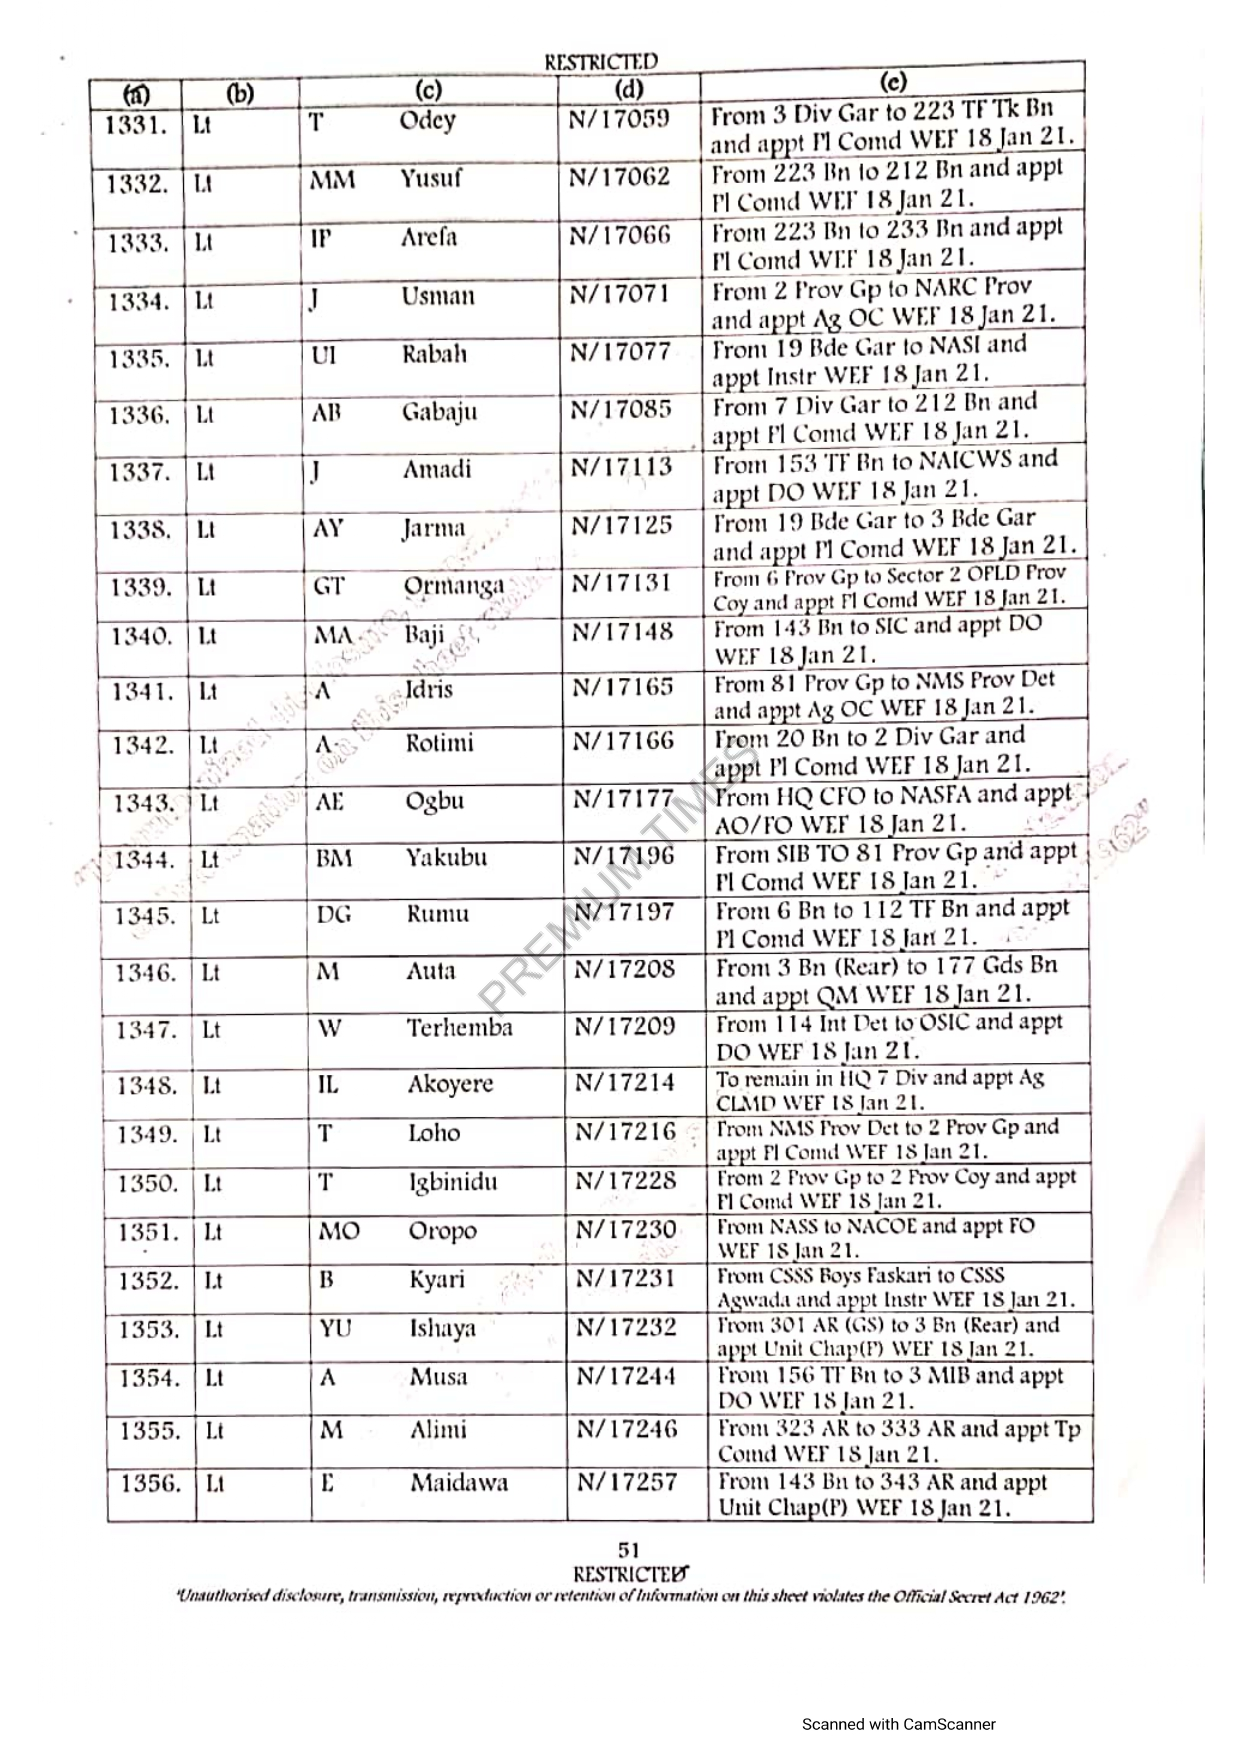 4 6037122442051193020 watermark page 0051 - JUST IN: Nigeria Army Redeploys Generals, Colonels, Others (See Full List)